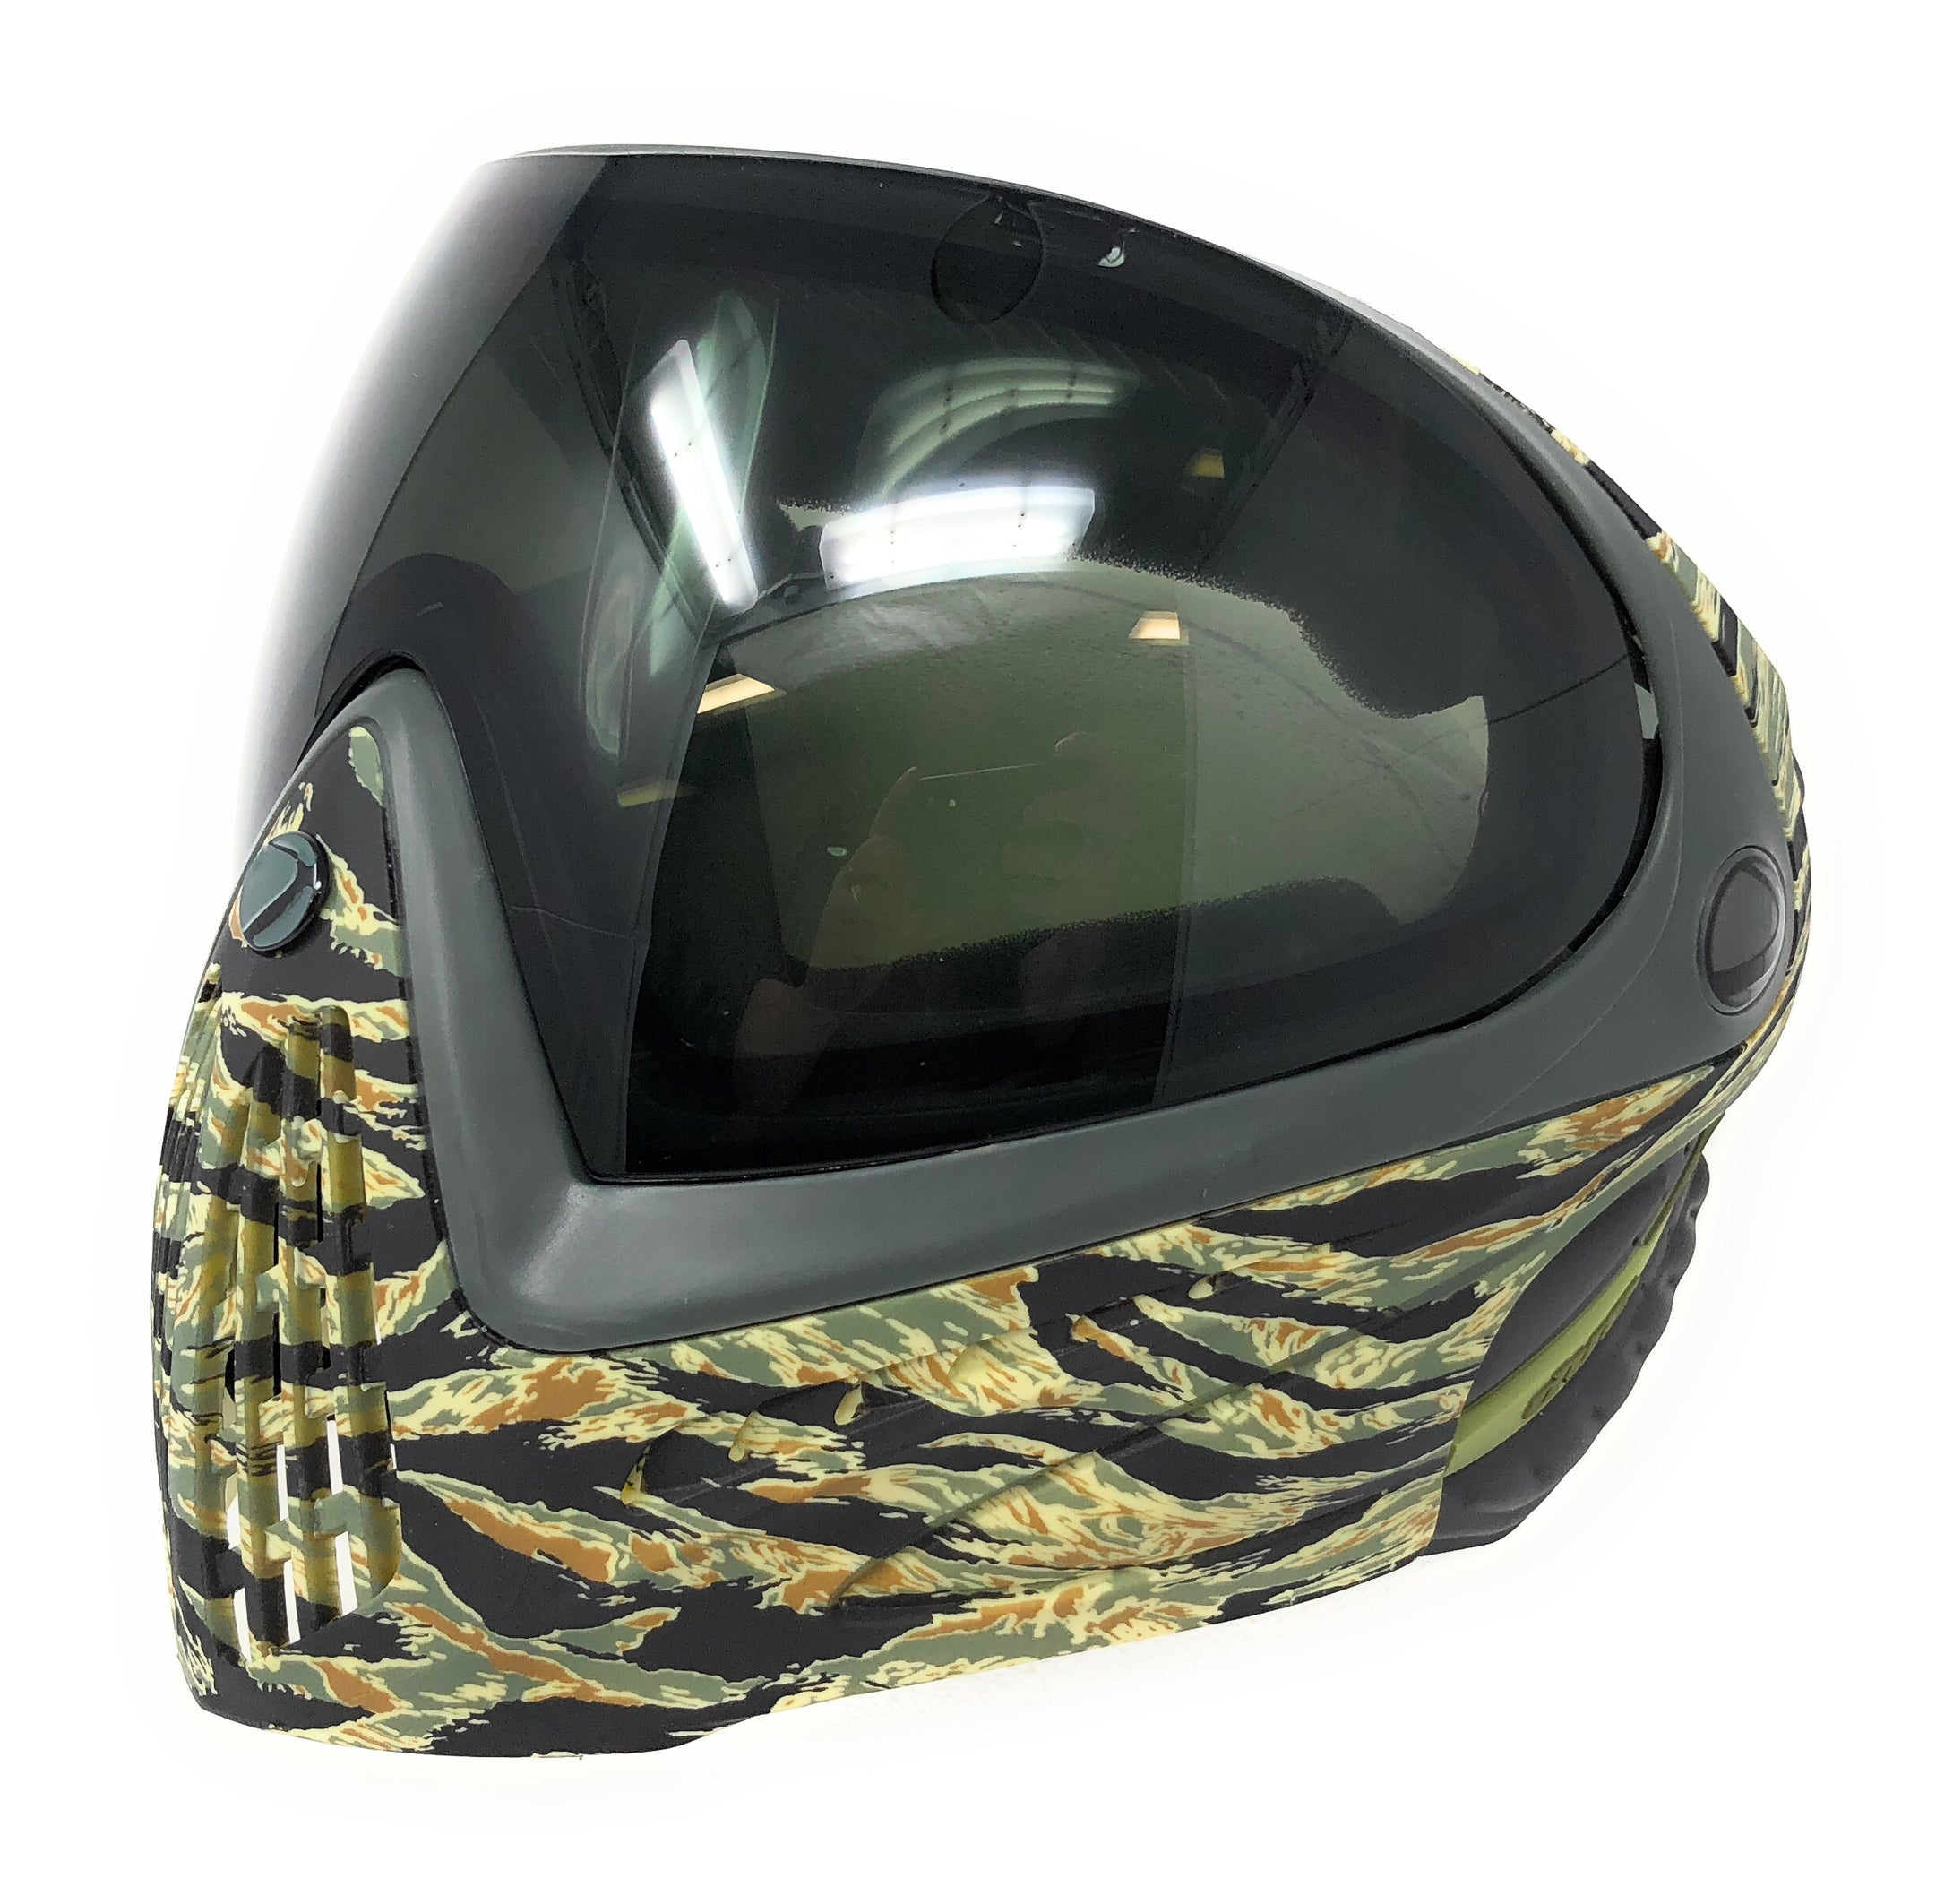 Photos of Dye I4 Paintball Goggle - Tiger (Camo). Photo taken by drpaintball.com